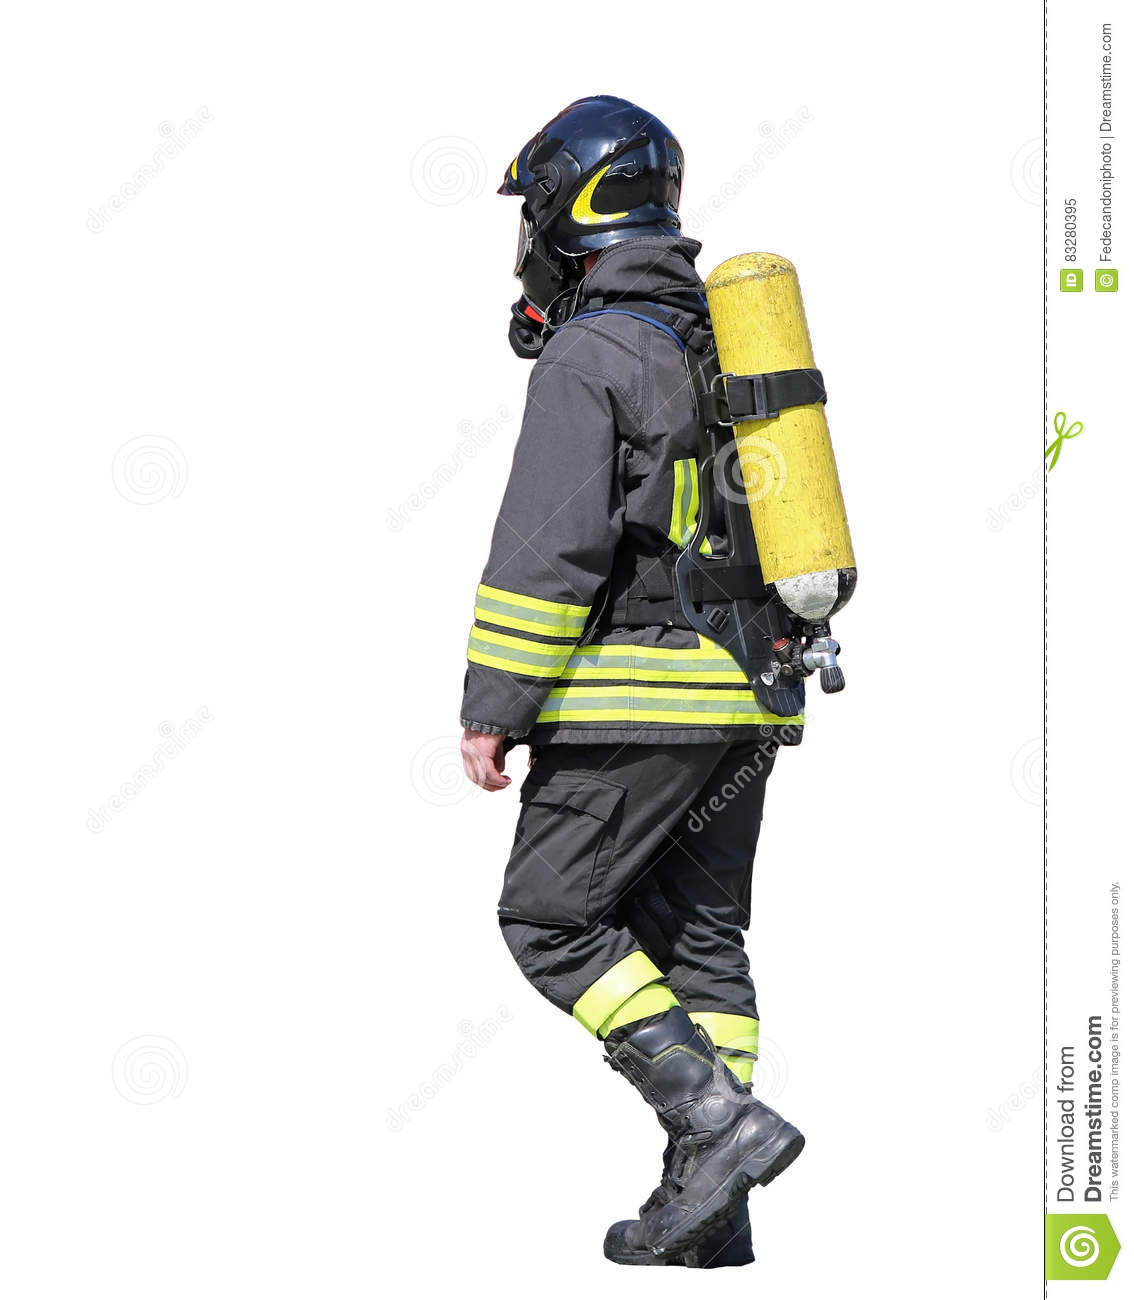 Portable Oxygen Concentrators Better Breathing likewise Space And Time The Women Behind Americas First Astronauts further Stock Photo Fireman Oxygen Tank To Breathe Fire Fires White Image83280395 additionally 299770918920968859 also 5 Confined Spaces Presentation. on person with oxygen tank